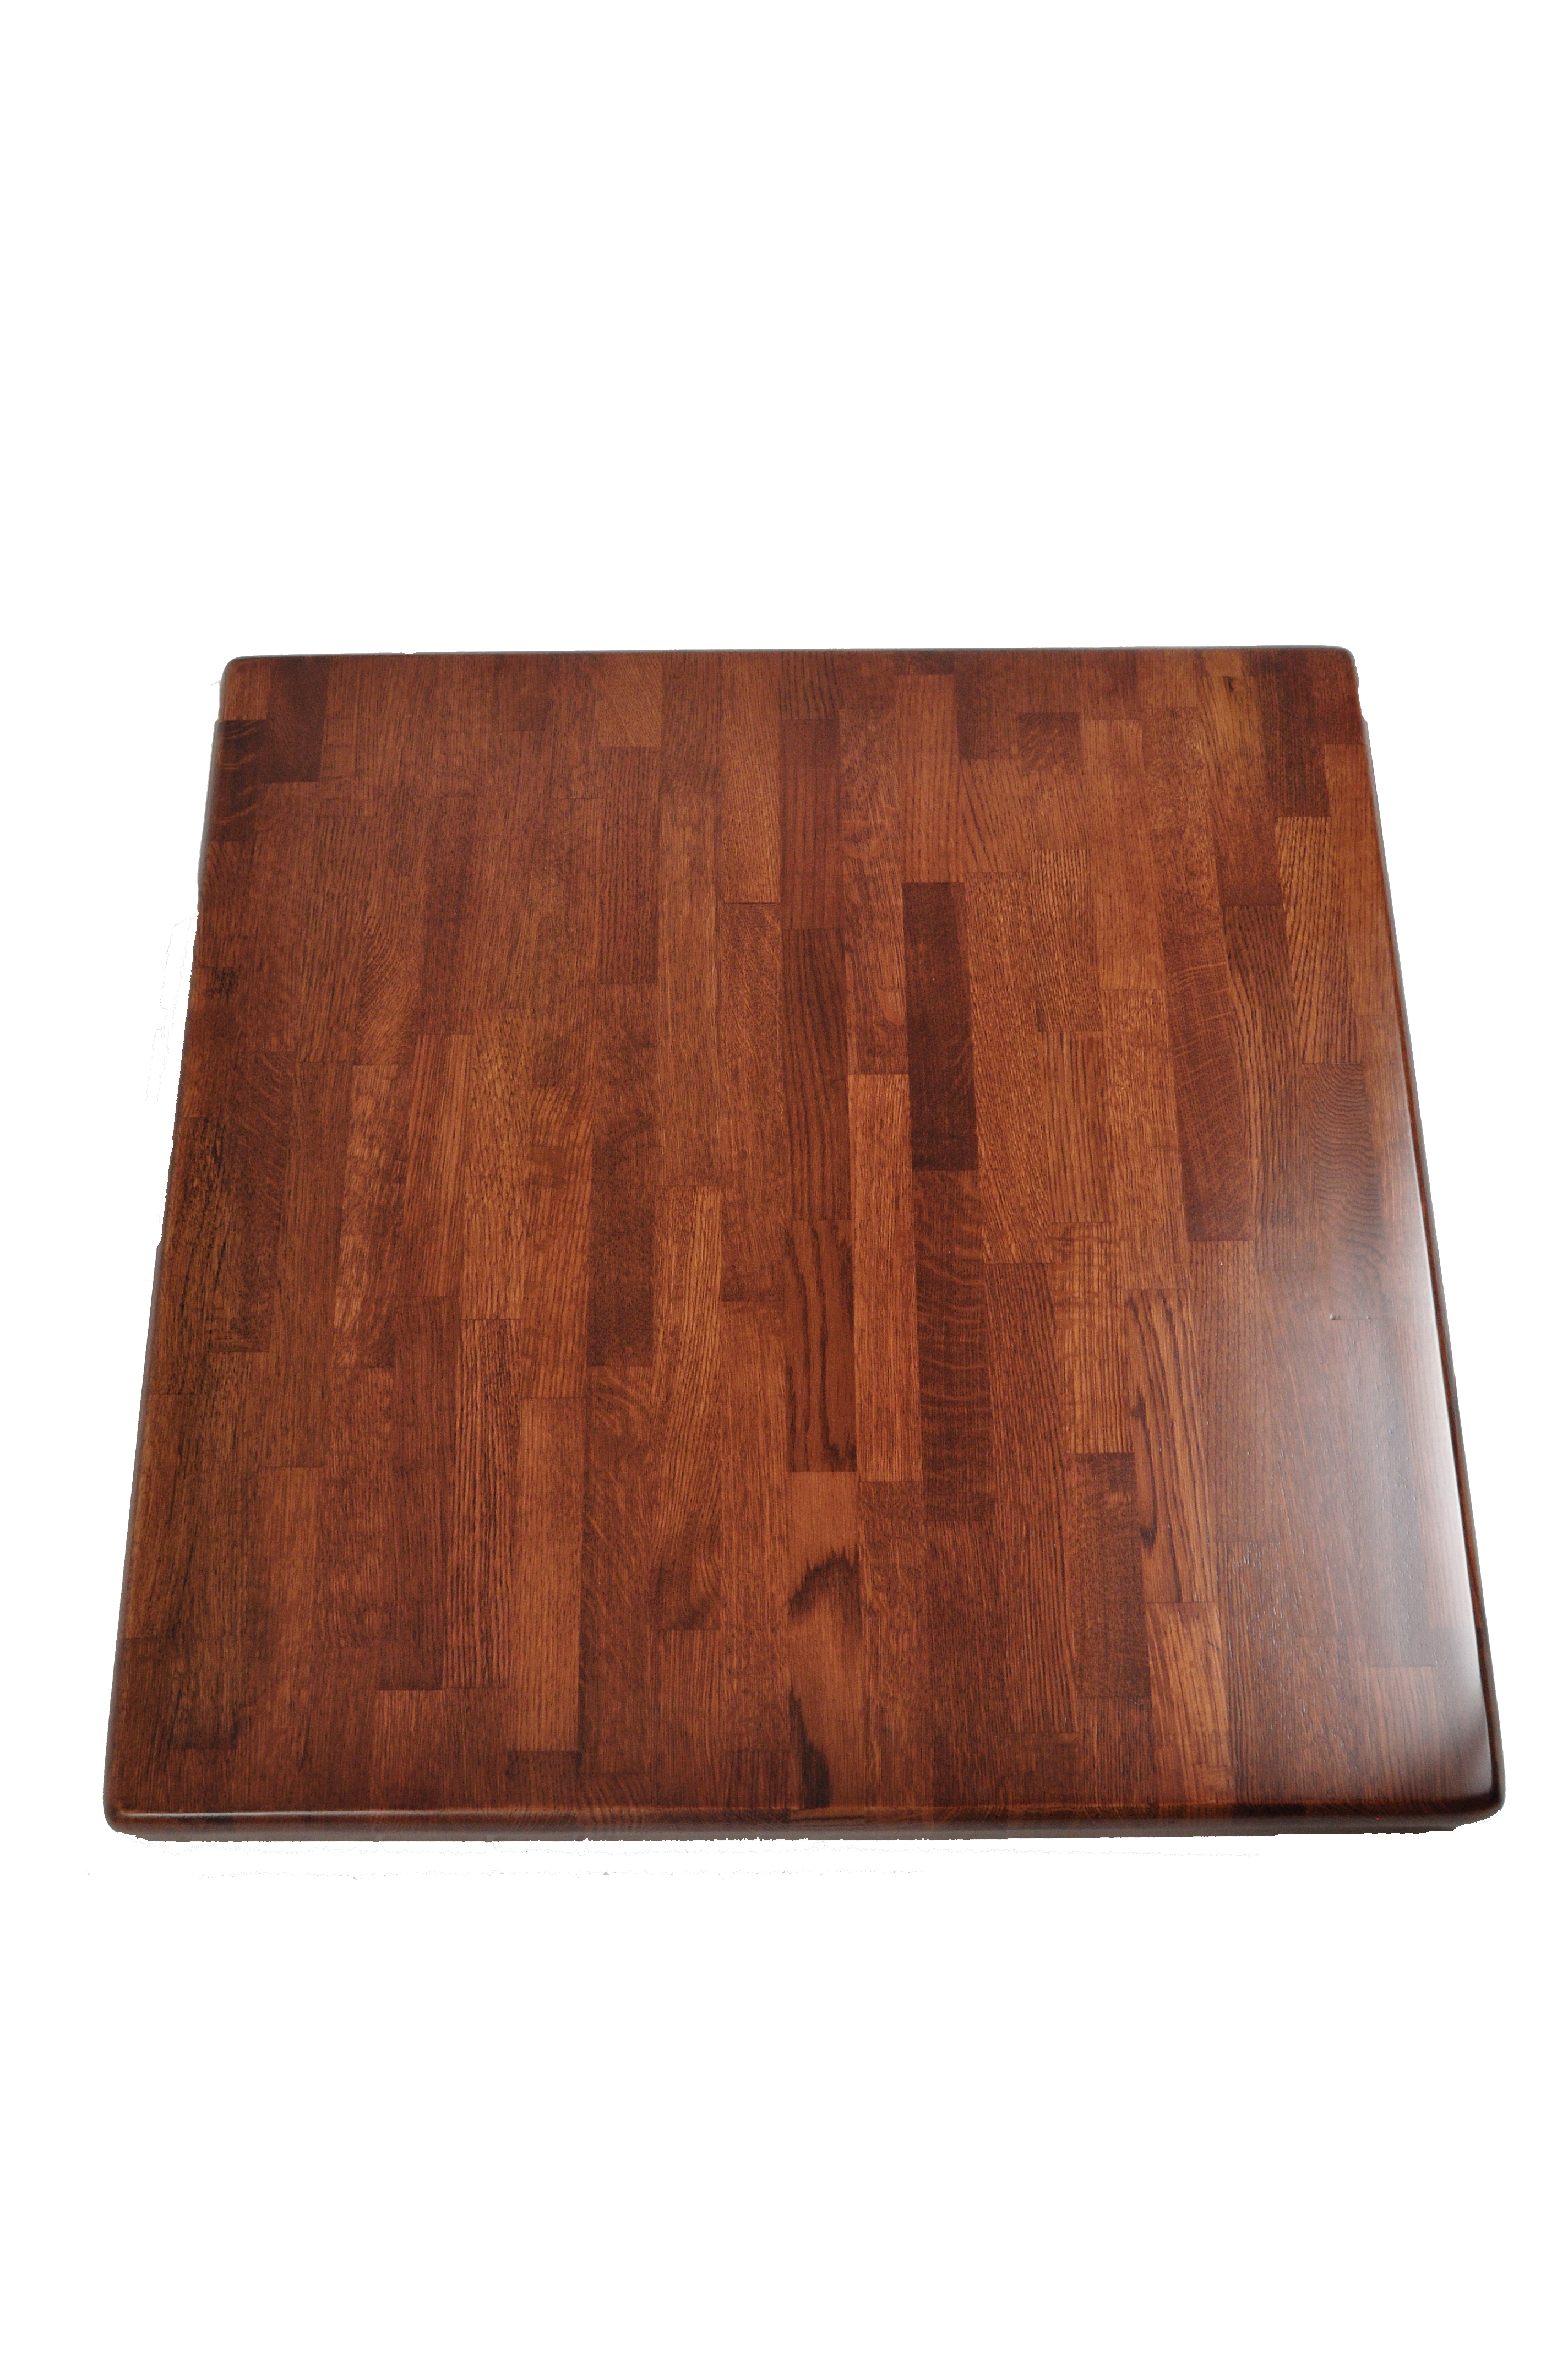 Wood Round Table.Solid Wood Round Table Top